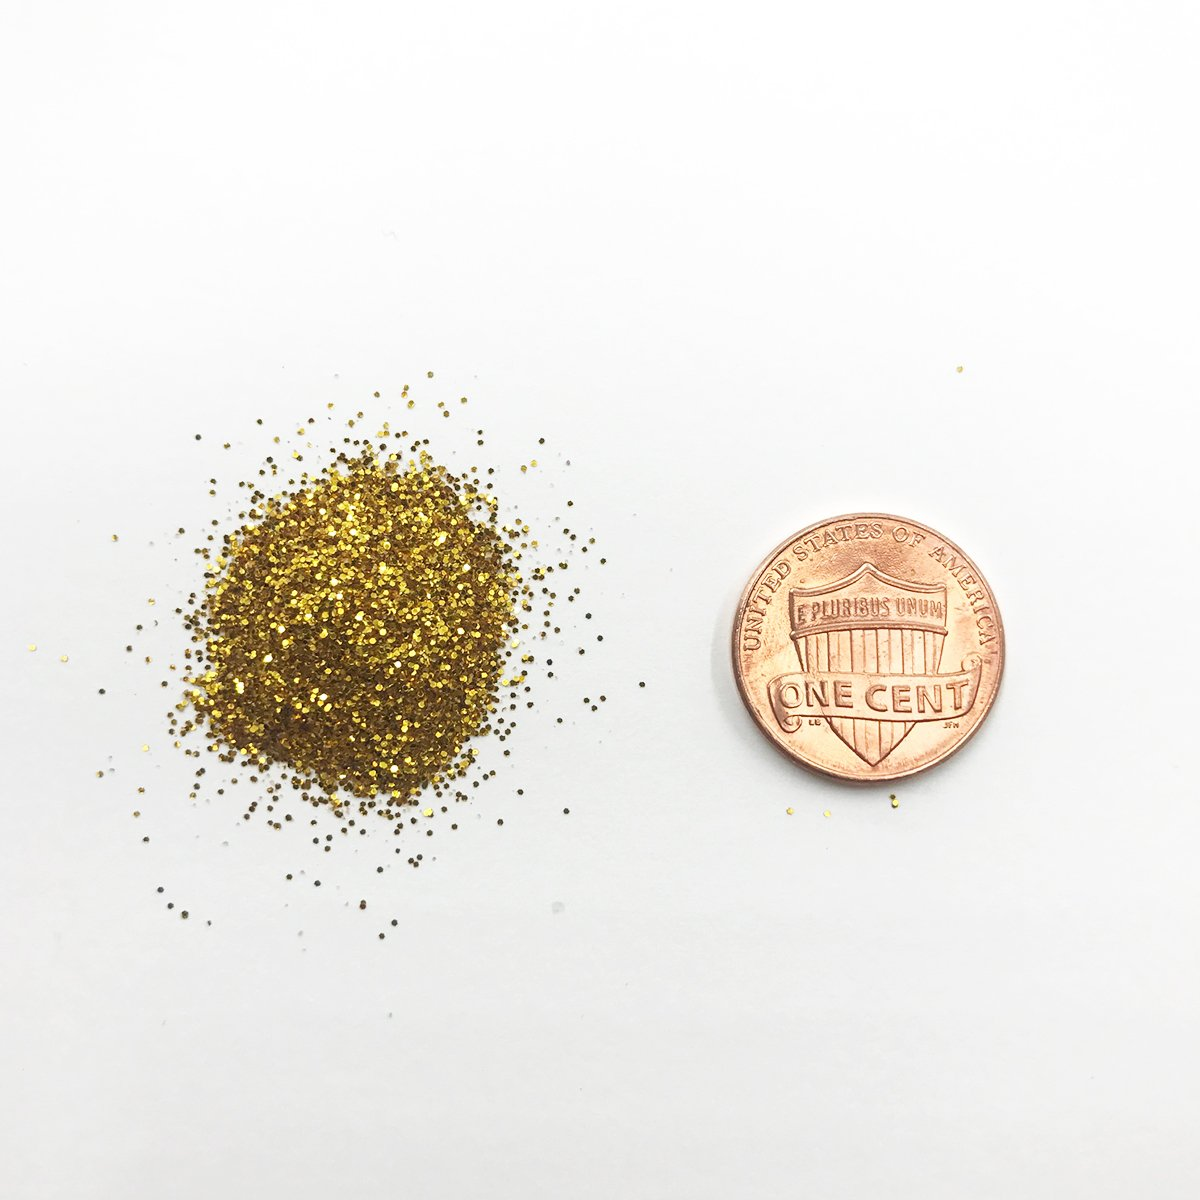 Craft and Party, 1 pound bottled Craft Glitter for Craft and Decoration (Gold) by Craft And Party